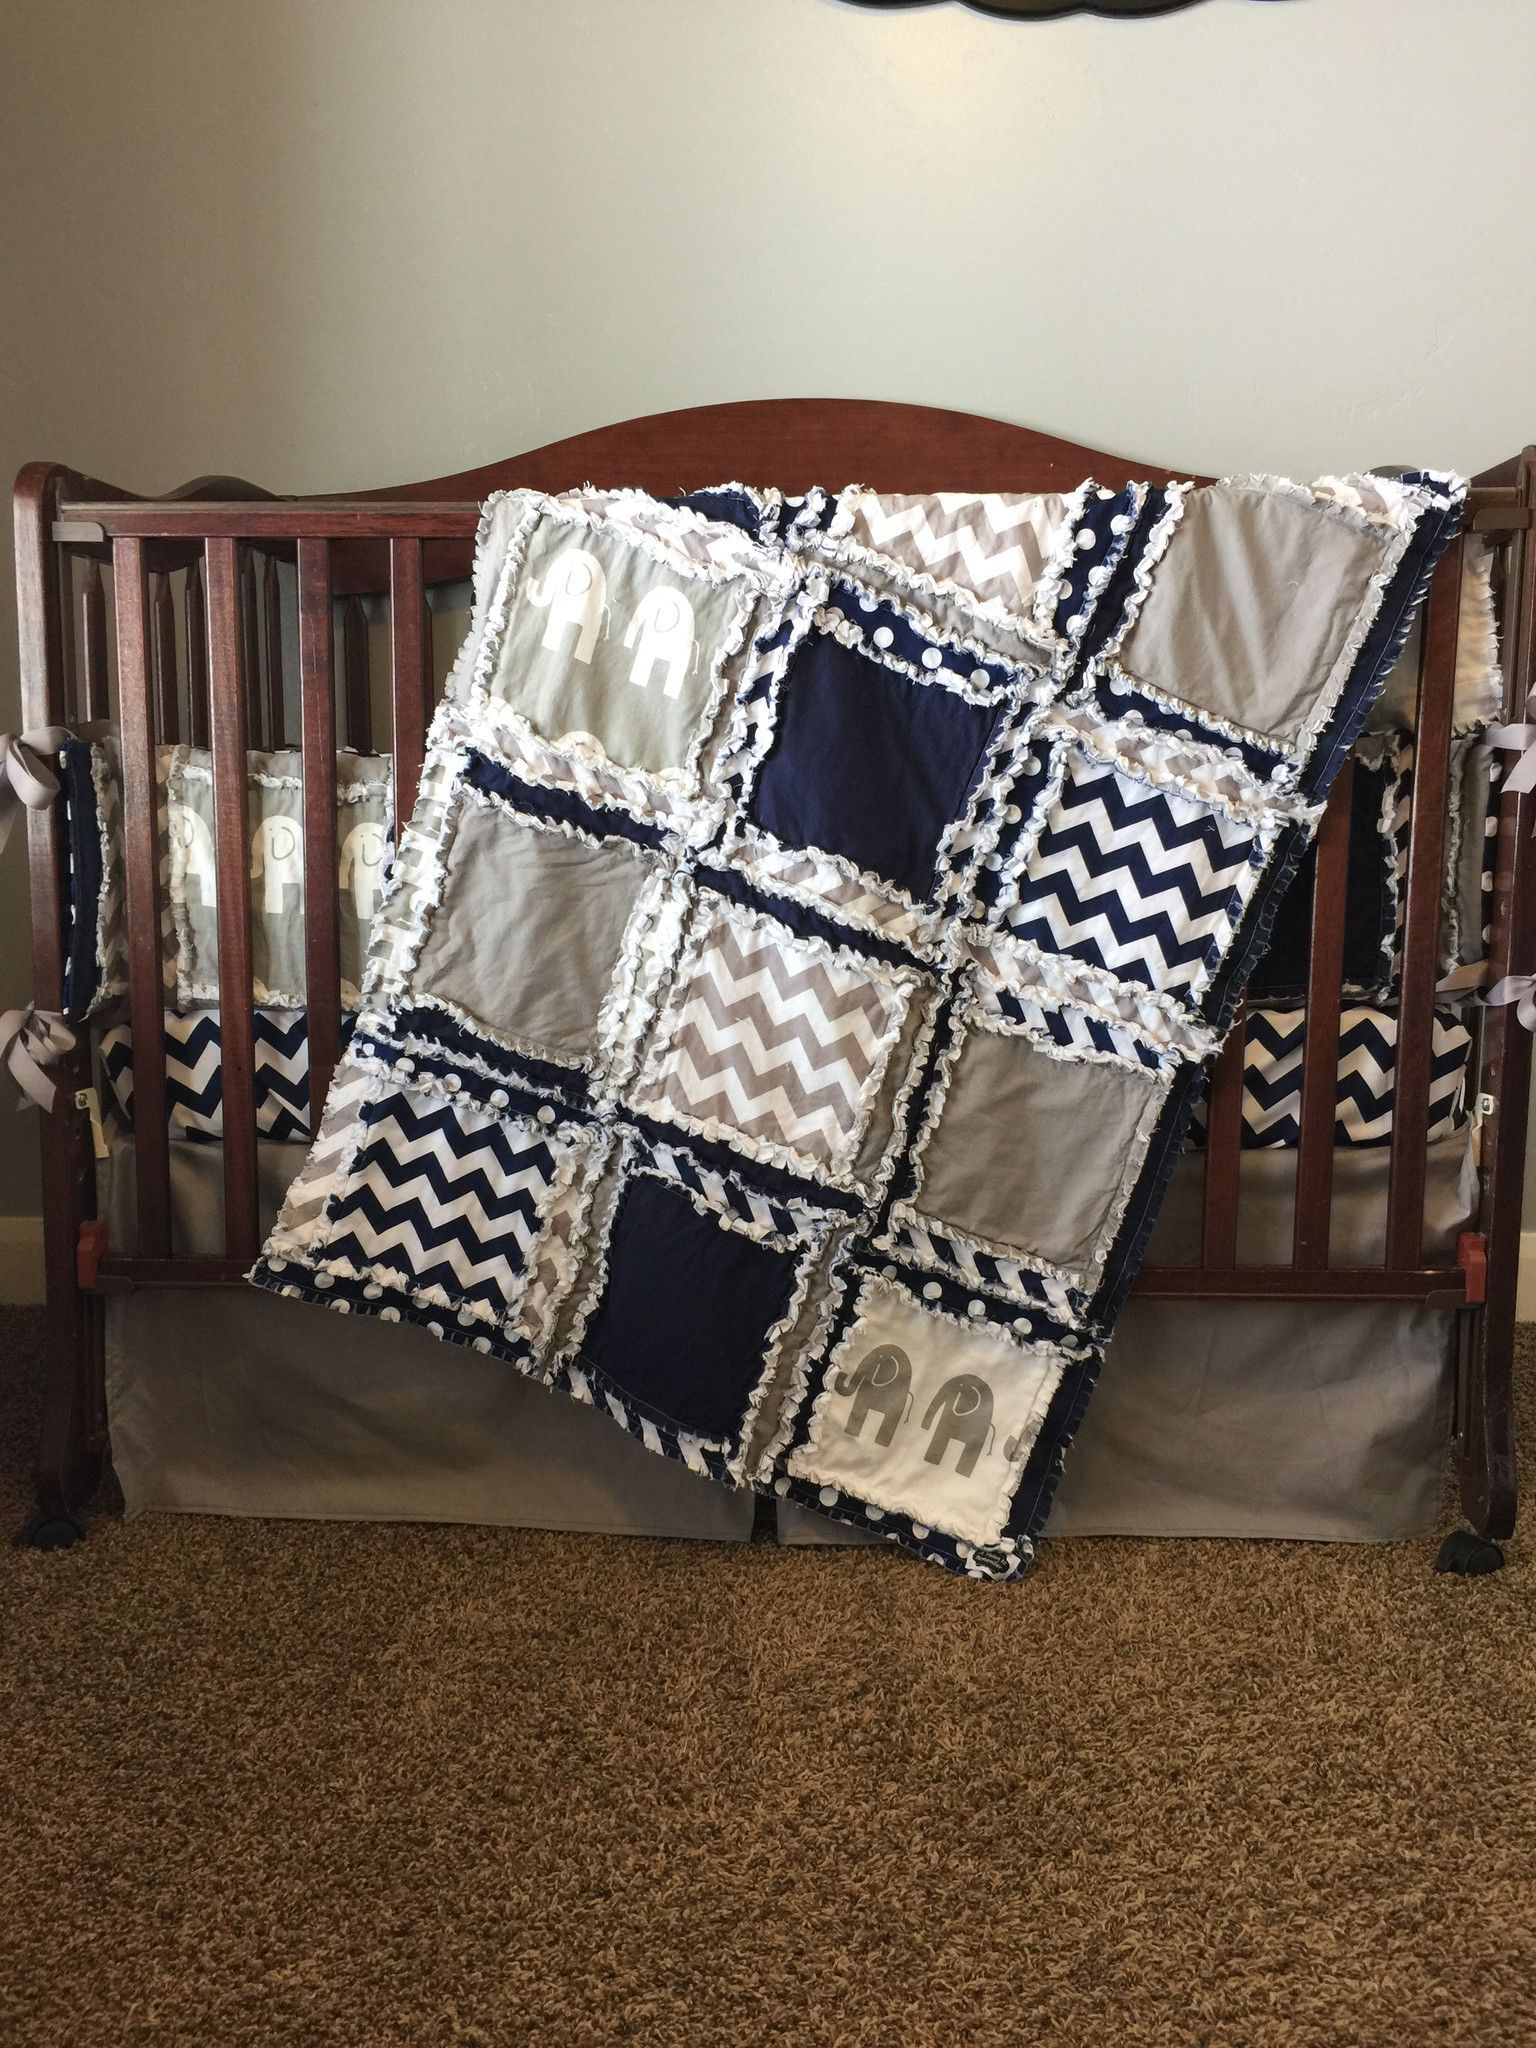 Custom crib bedding for Baby Boy Nursery in gray & navy blue with ... : solid color quilted pillow shams - Adamdwight.com